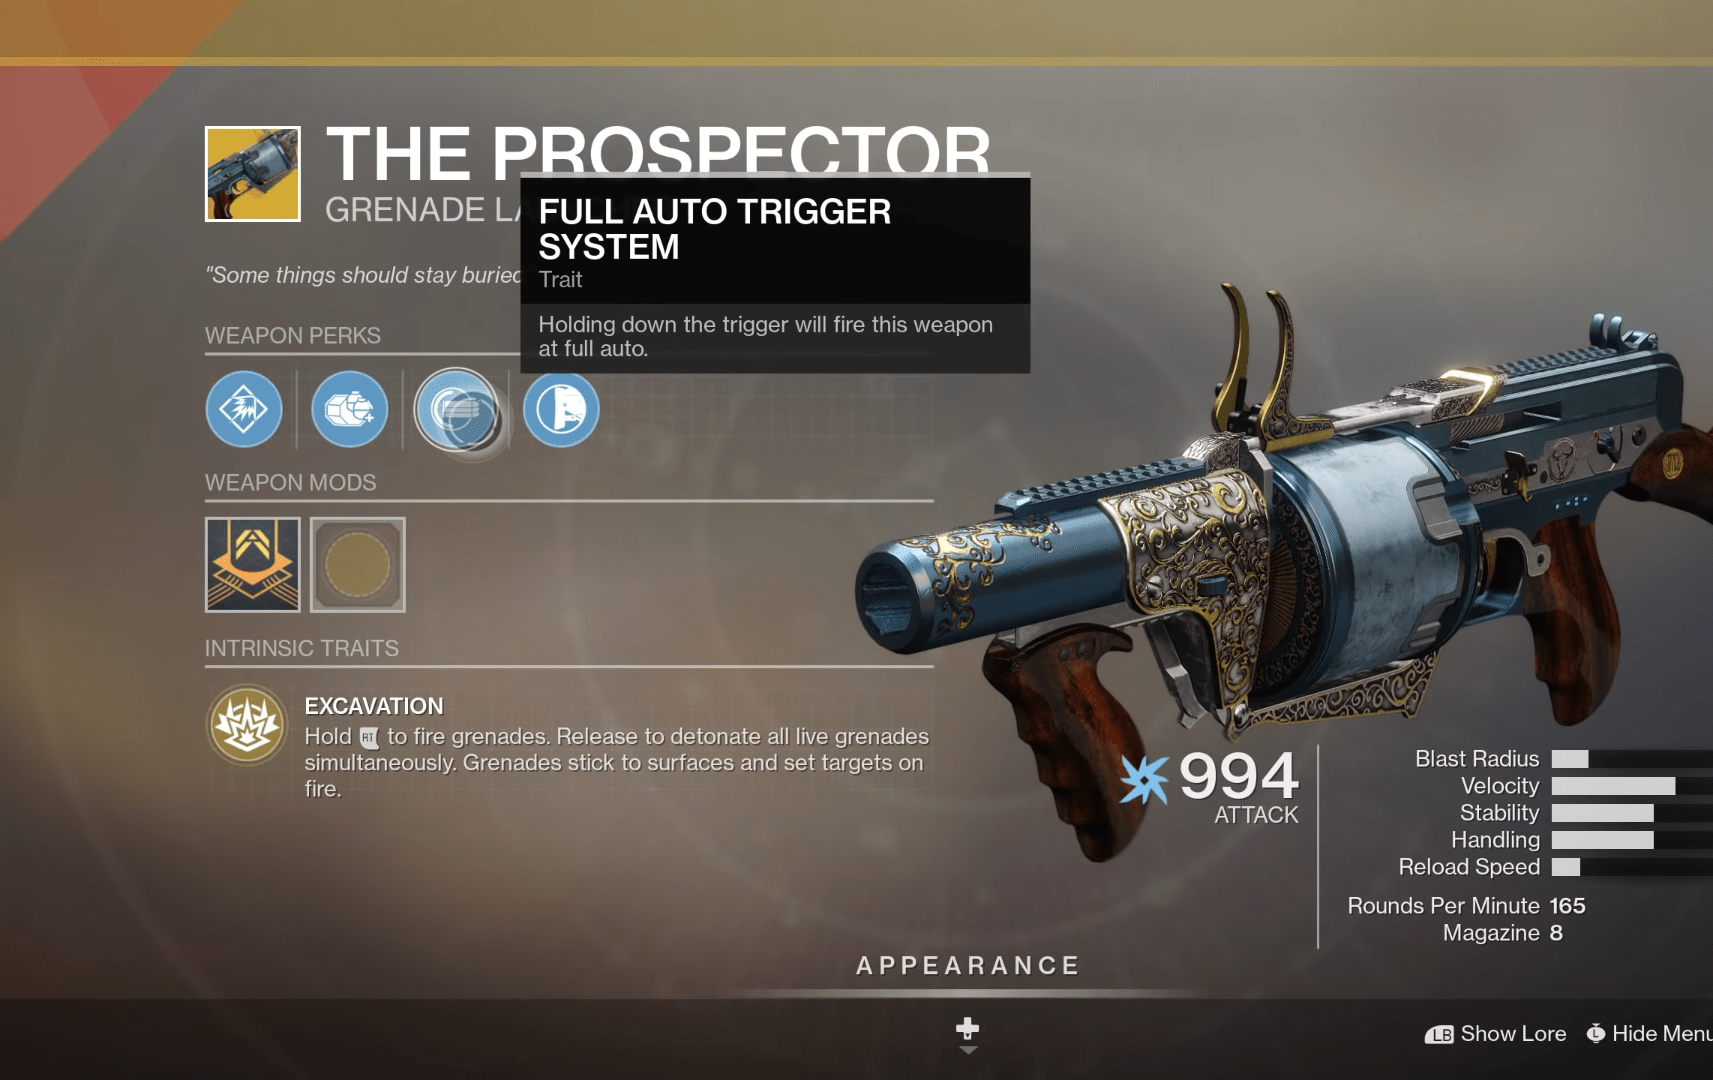 Destiny 2 Xur Is Located On The Tower This Week, Selling The Prospector Exotic Grenade Launcher